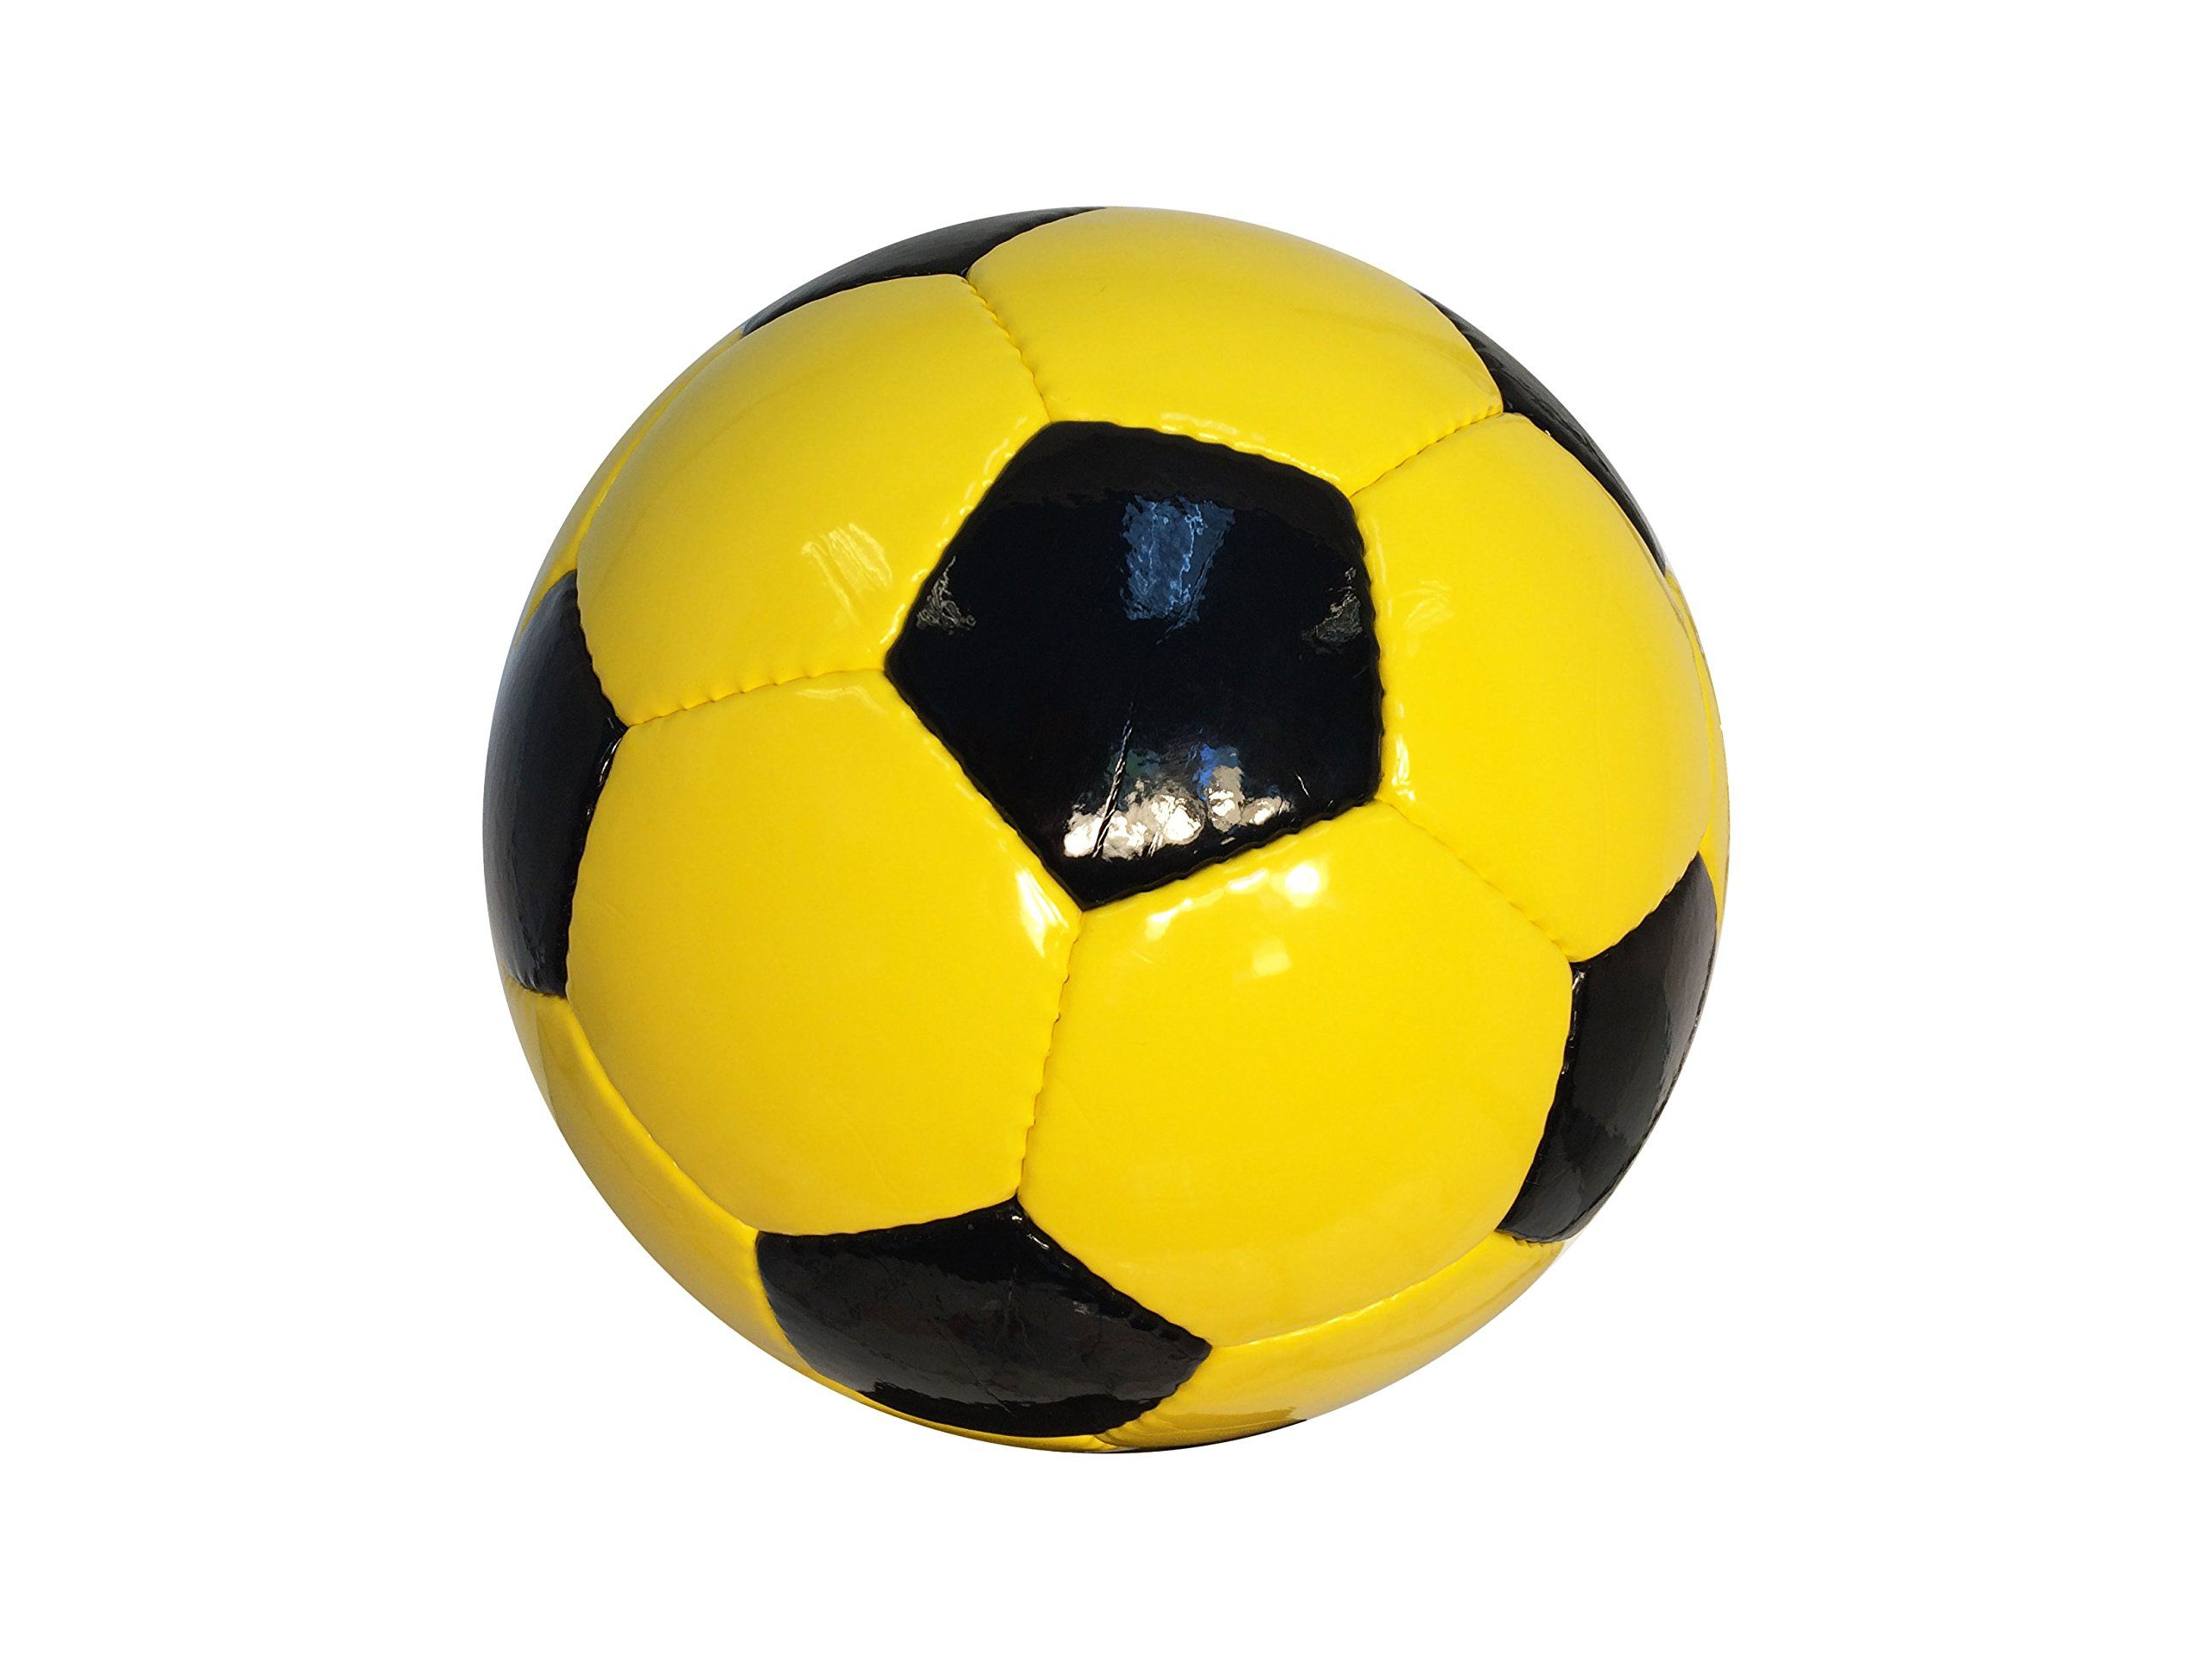 Soccer Balls Classic Collection Black Pentagons Gold Hexagons Solid Colored Panels Without Any Imprint Official Size Soccer Balls Soccer Classic Collection